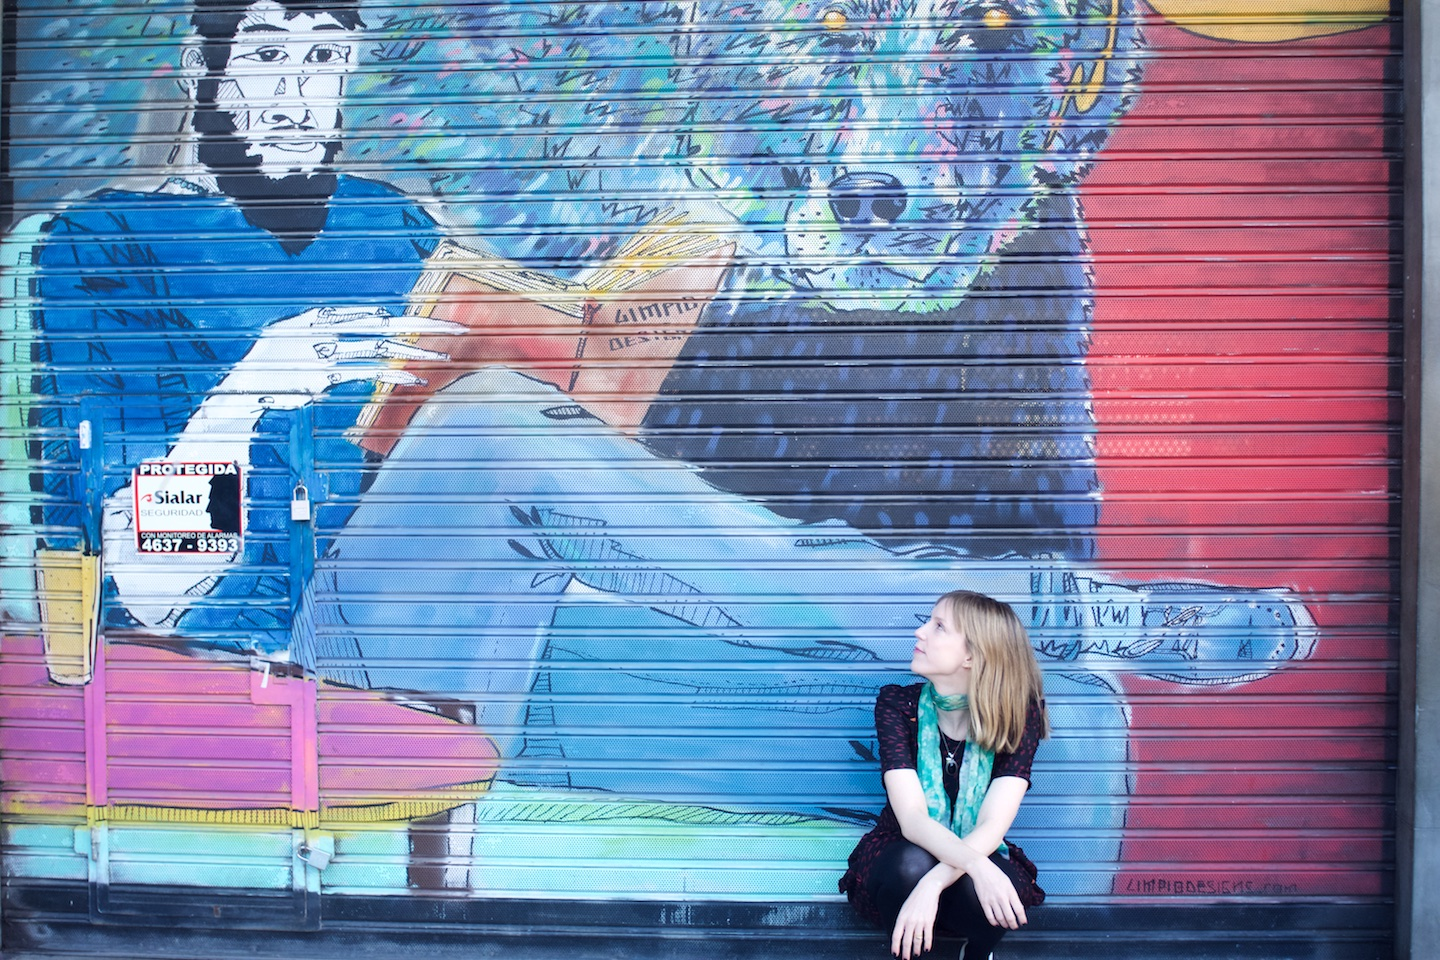 Helen-Coyle-Portrait-with-Book-Bear-Street-Art-by-Beatrice-Murch